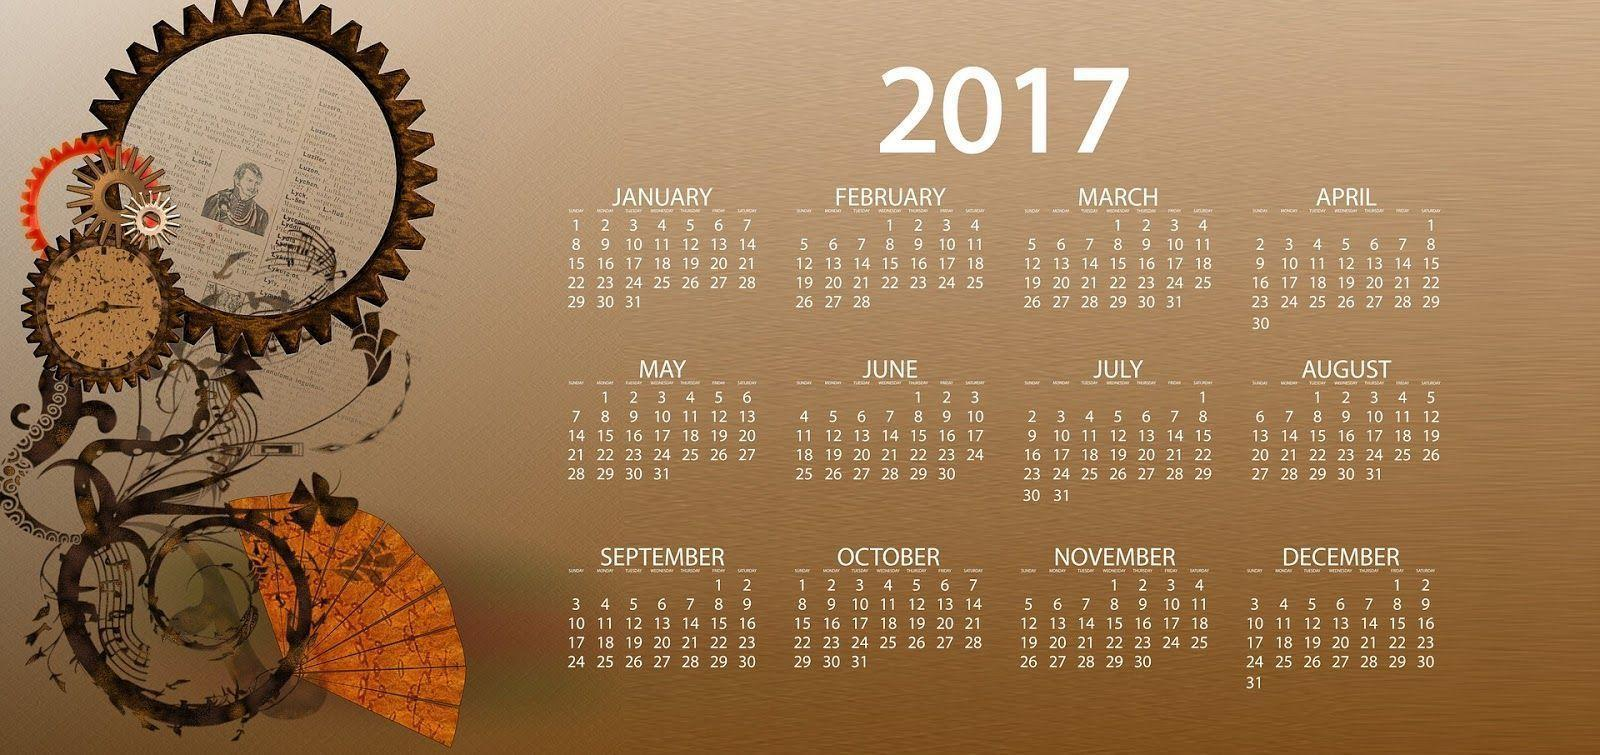 Calendar Wallpaper : Wallpapers with calendar wallpaper cave